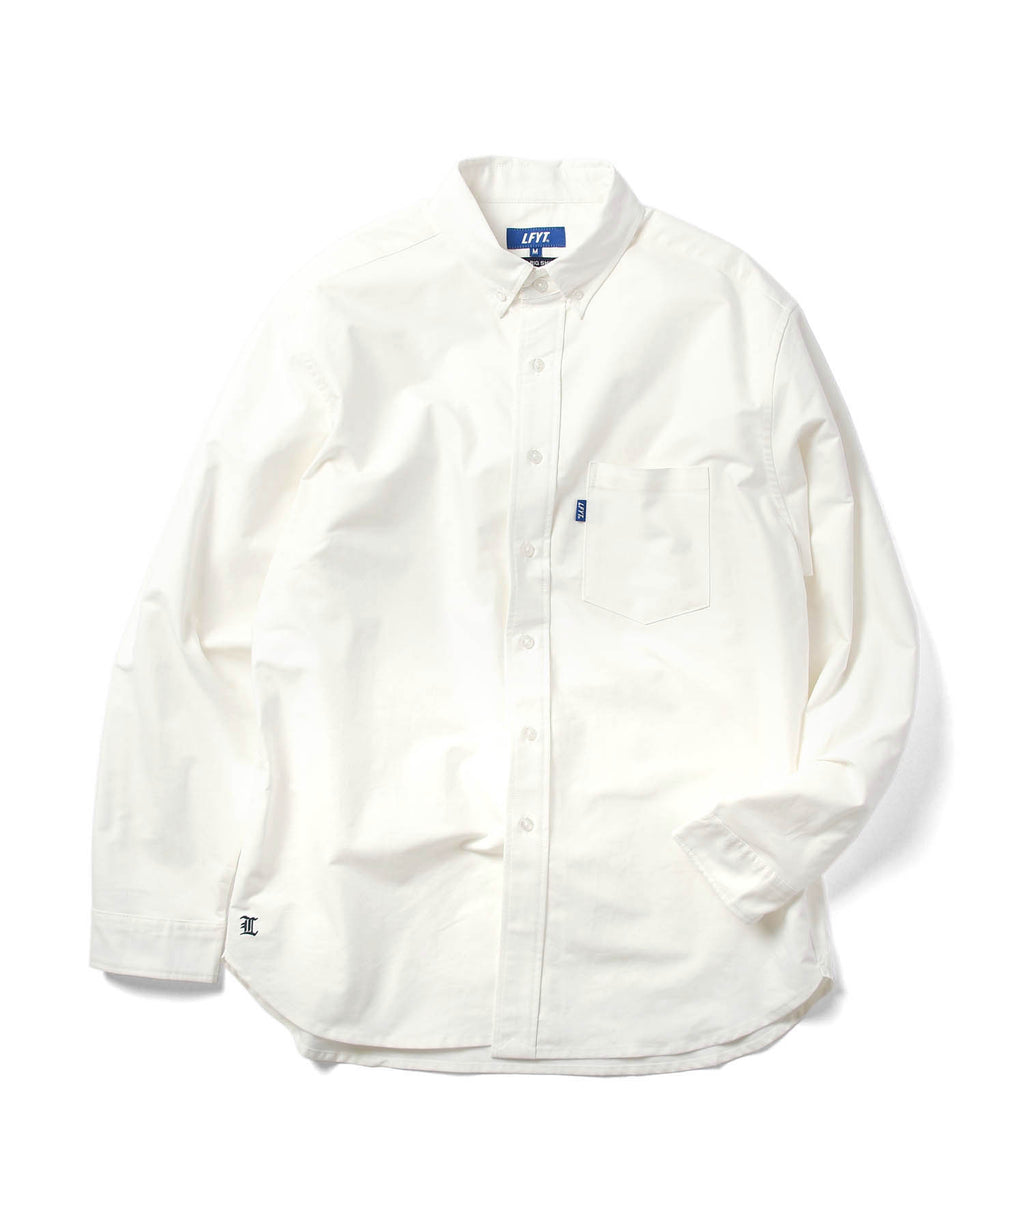 L LOGO BIG SILHOUTTE OXFORD SHIRT LS210201 WHITE